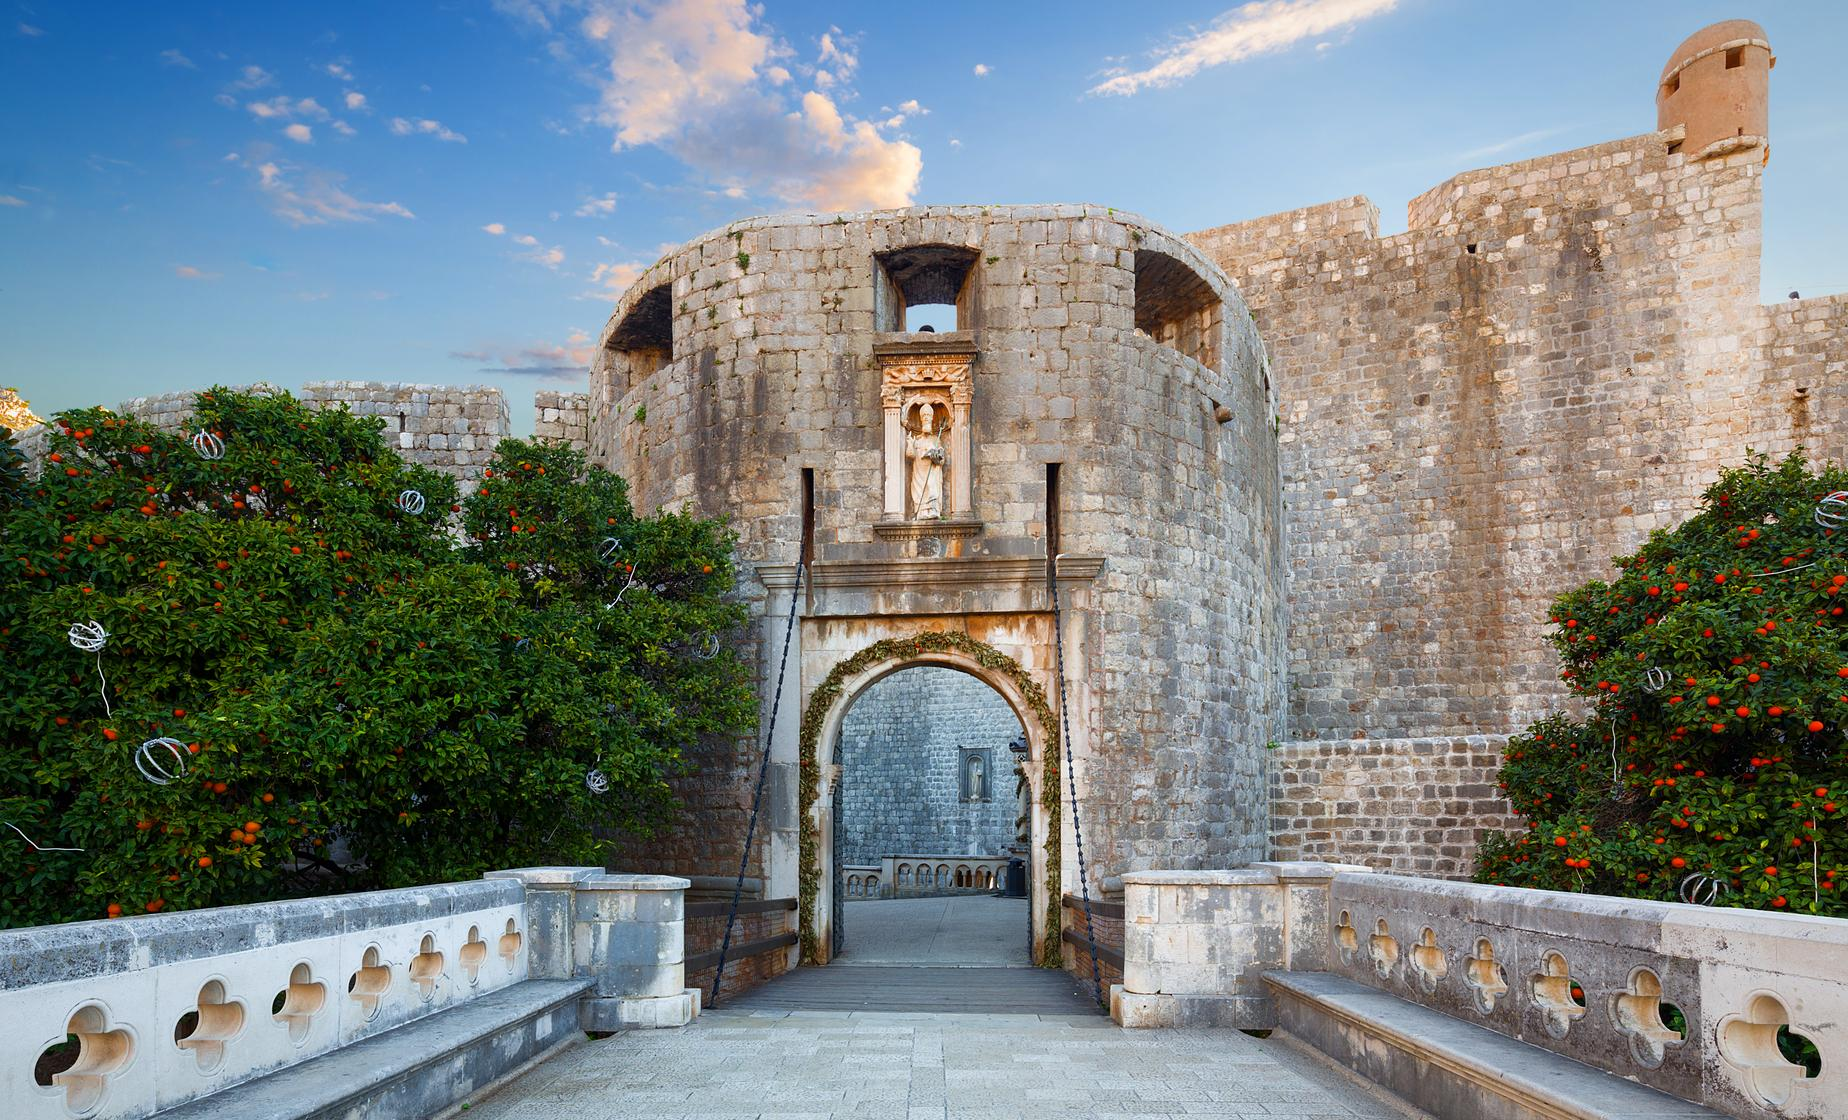 Game of Thrones Tour in Dubrovnik (Pile Gate and the Lovrijenac Fort)